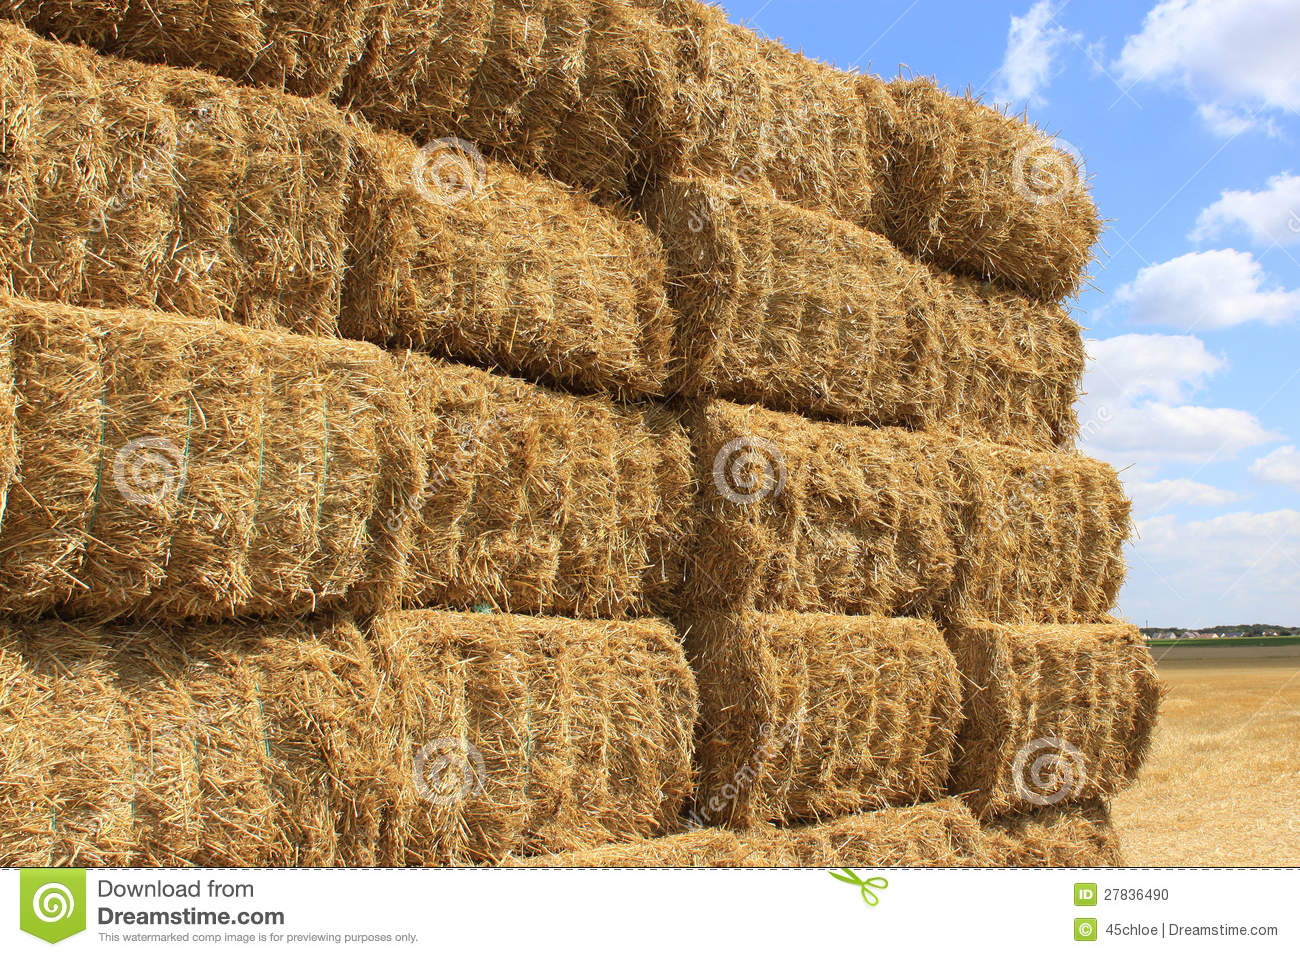 Images of Haystack | 1300x957